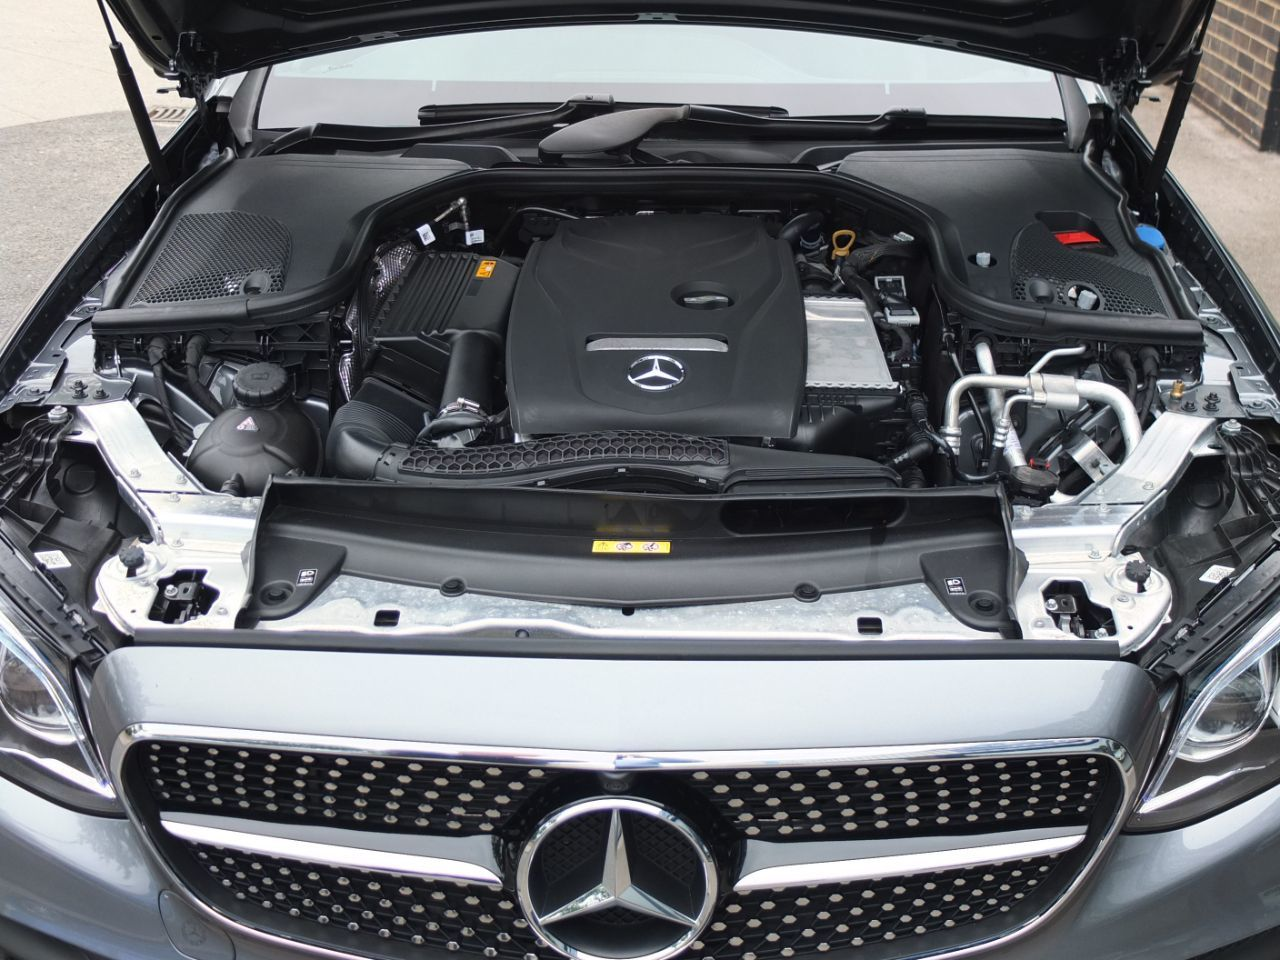 Mercedes-Benz E Class 2.0 E300 AMG Line Premium Plus Coupe 9G-tronic Coupe Petrol Selenite Grey Metallic